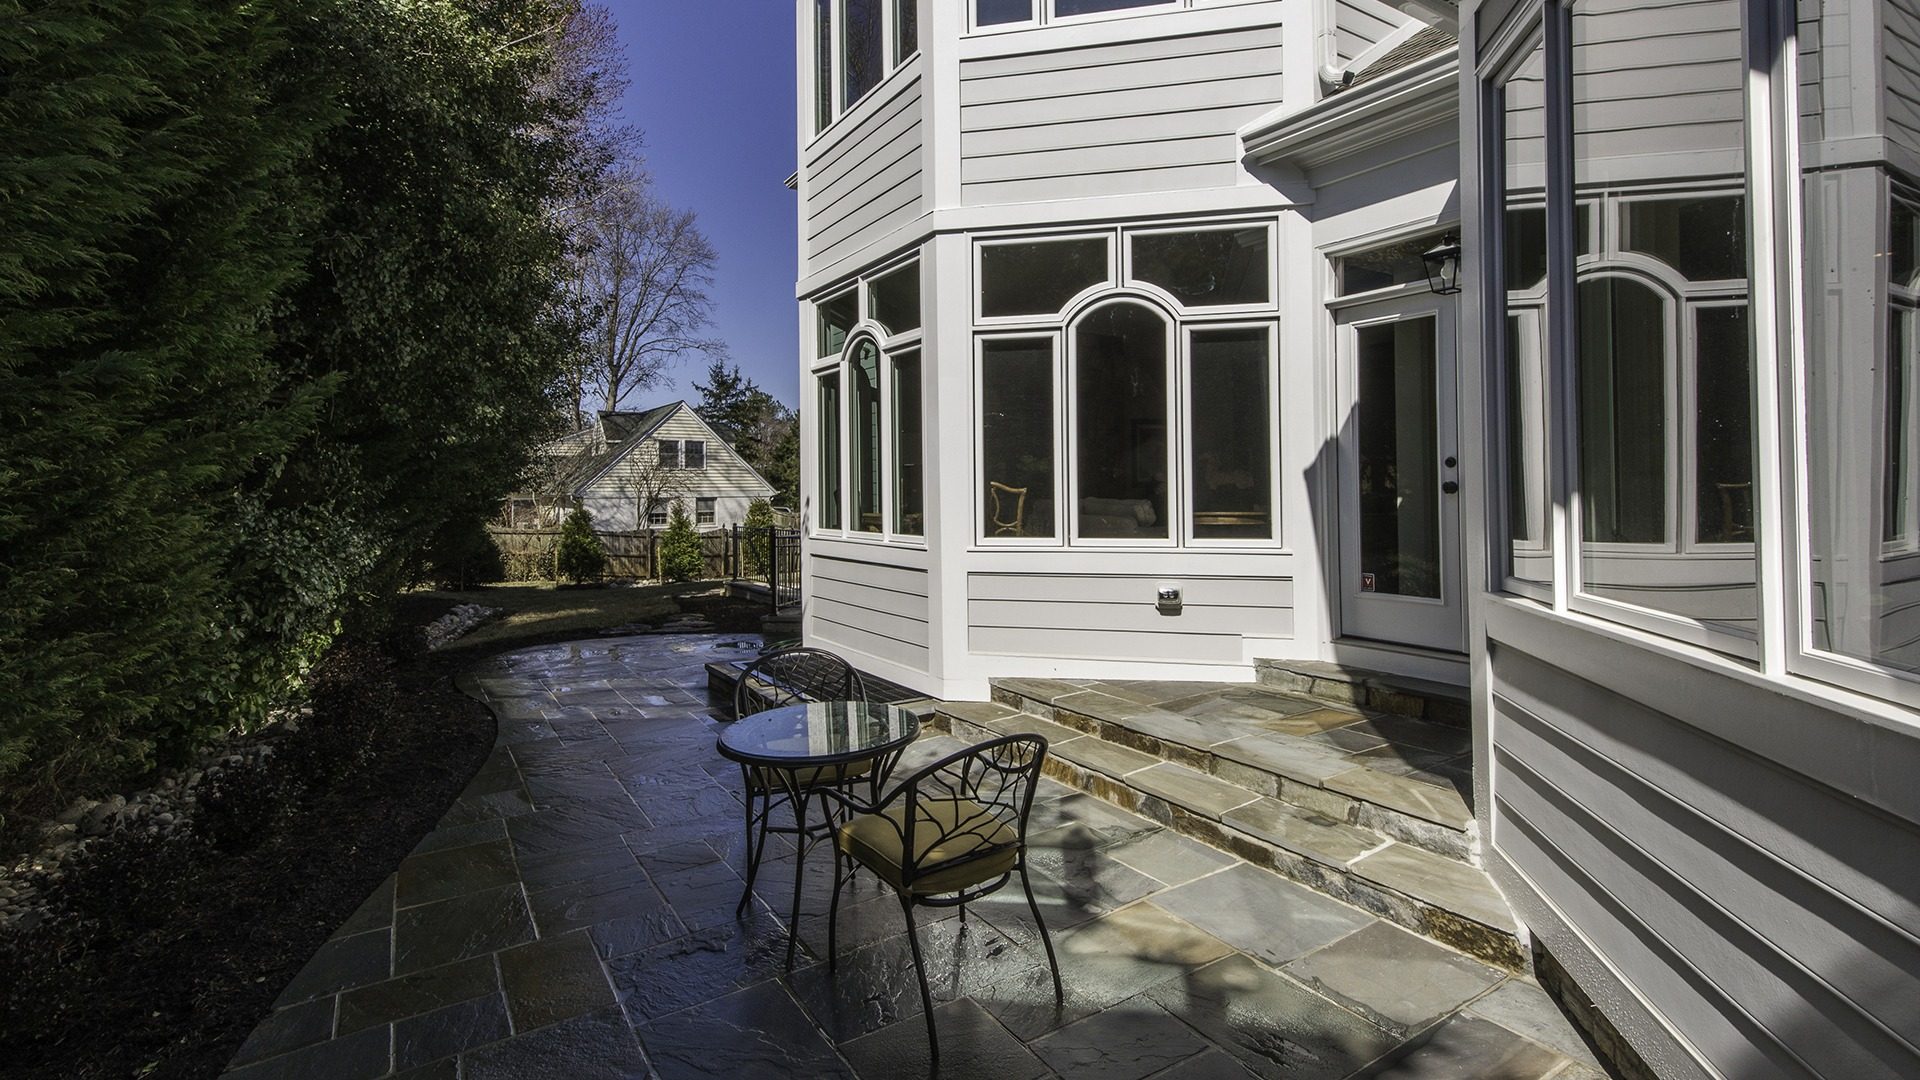 The Patio in Carper Street, a Gulick | One custom home.